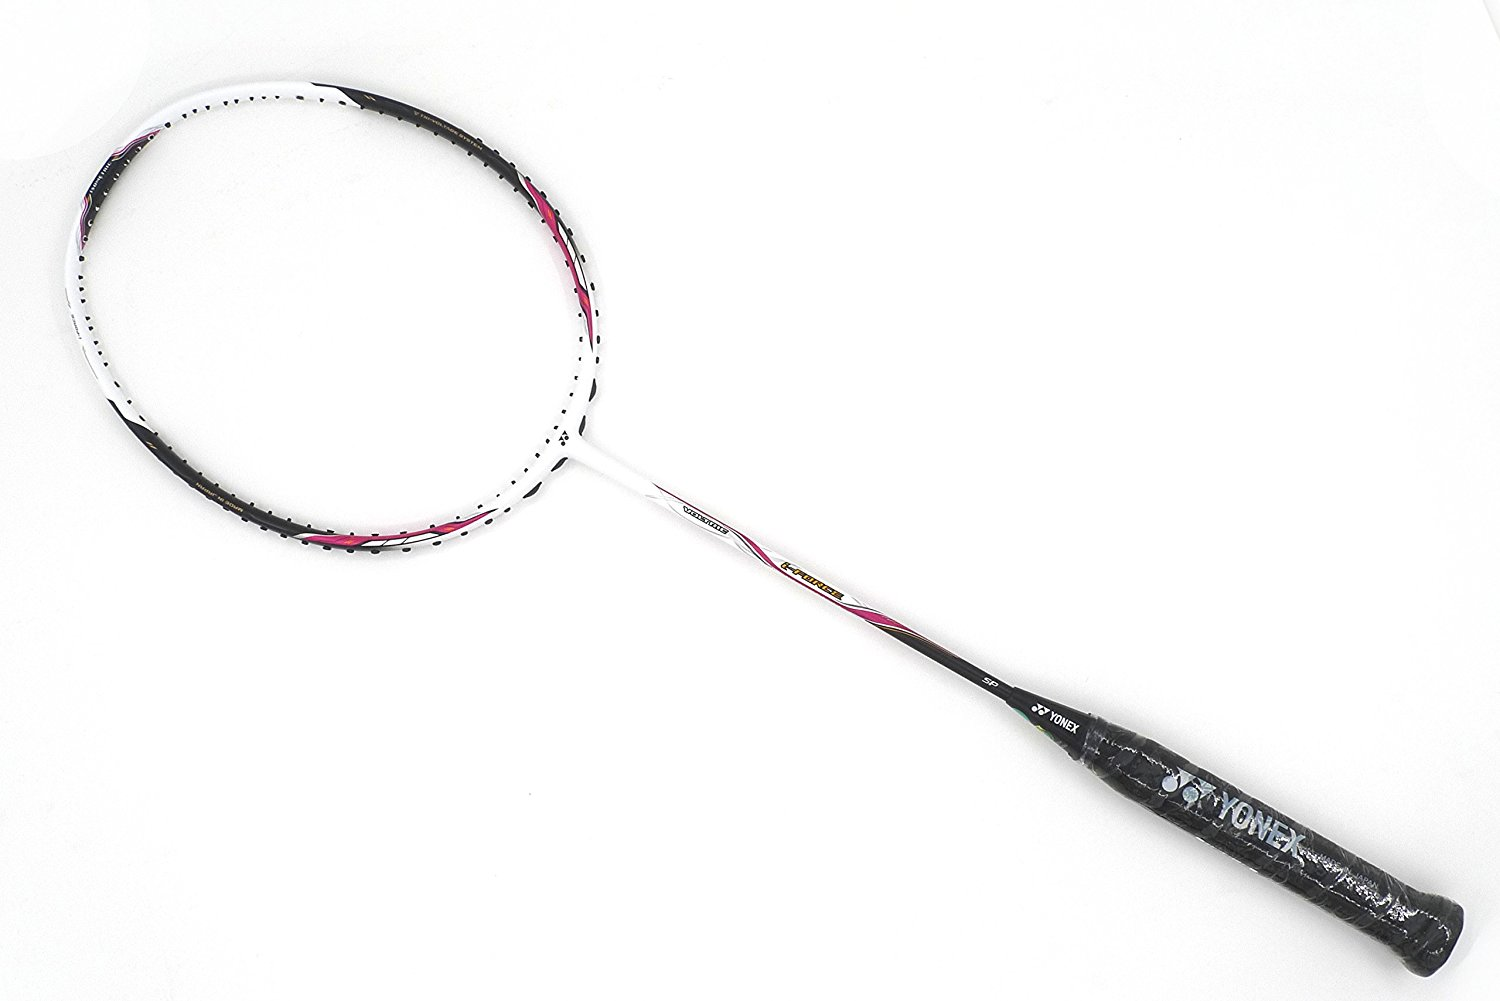 High Quality ARC SABER 11 Badminton Racket,free prestrung /& HQ grip red//white